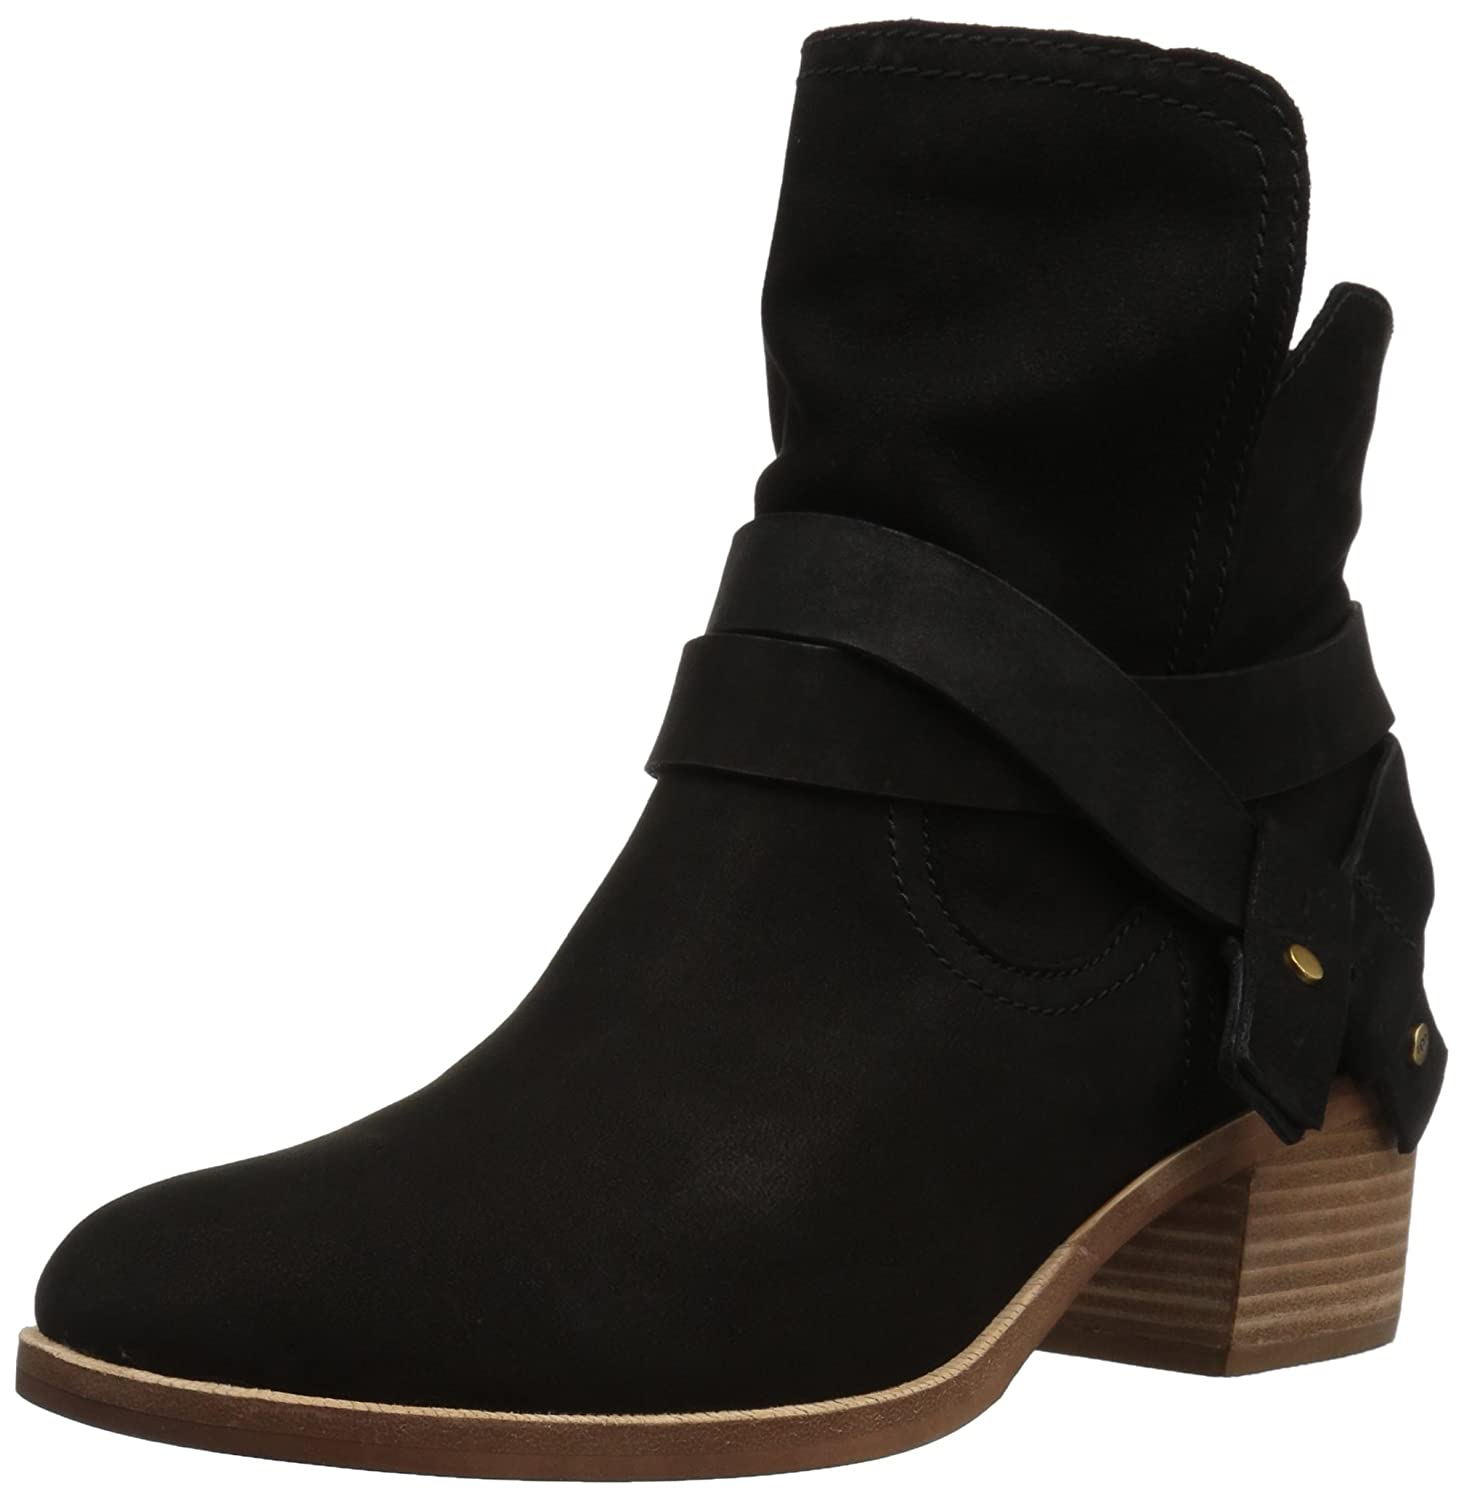 6d929b14191 UGG Women's Elora Ankle Boot